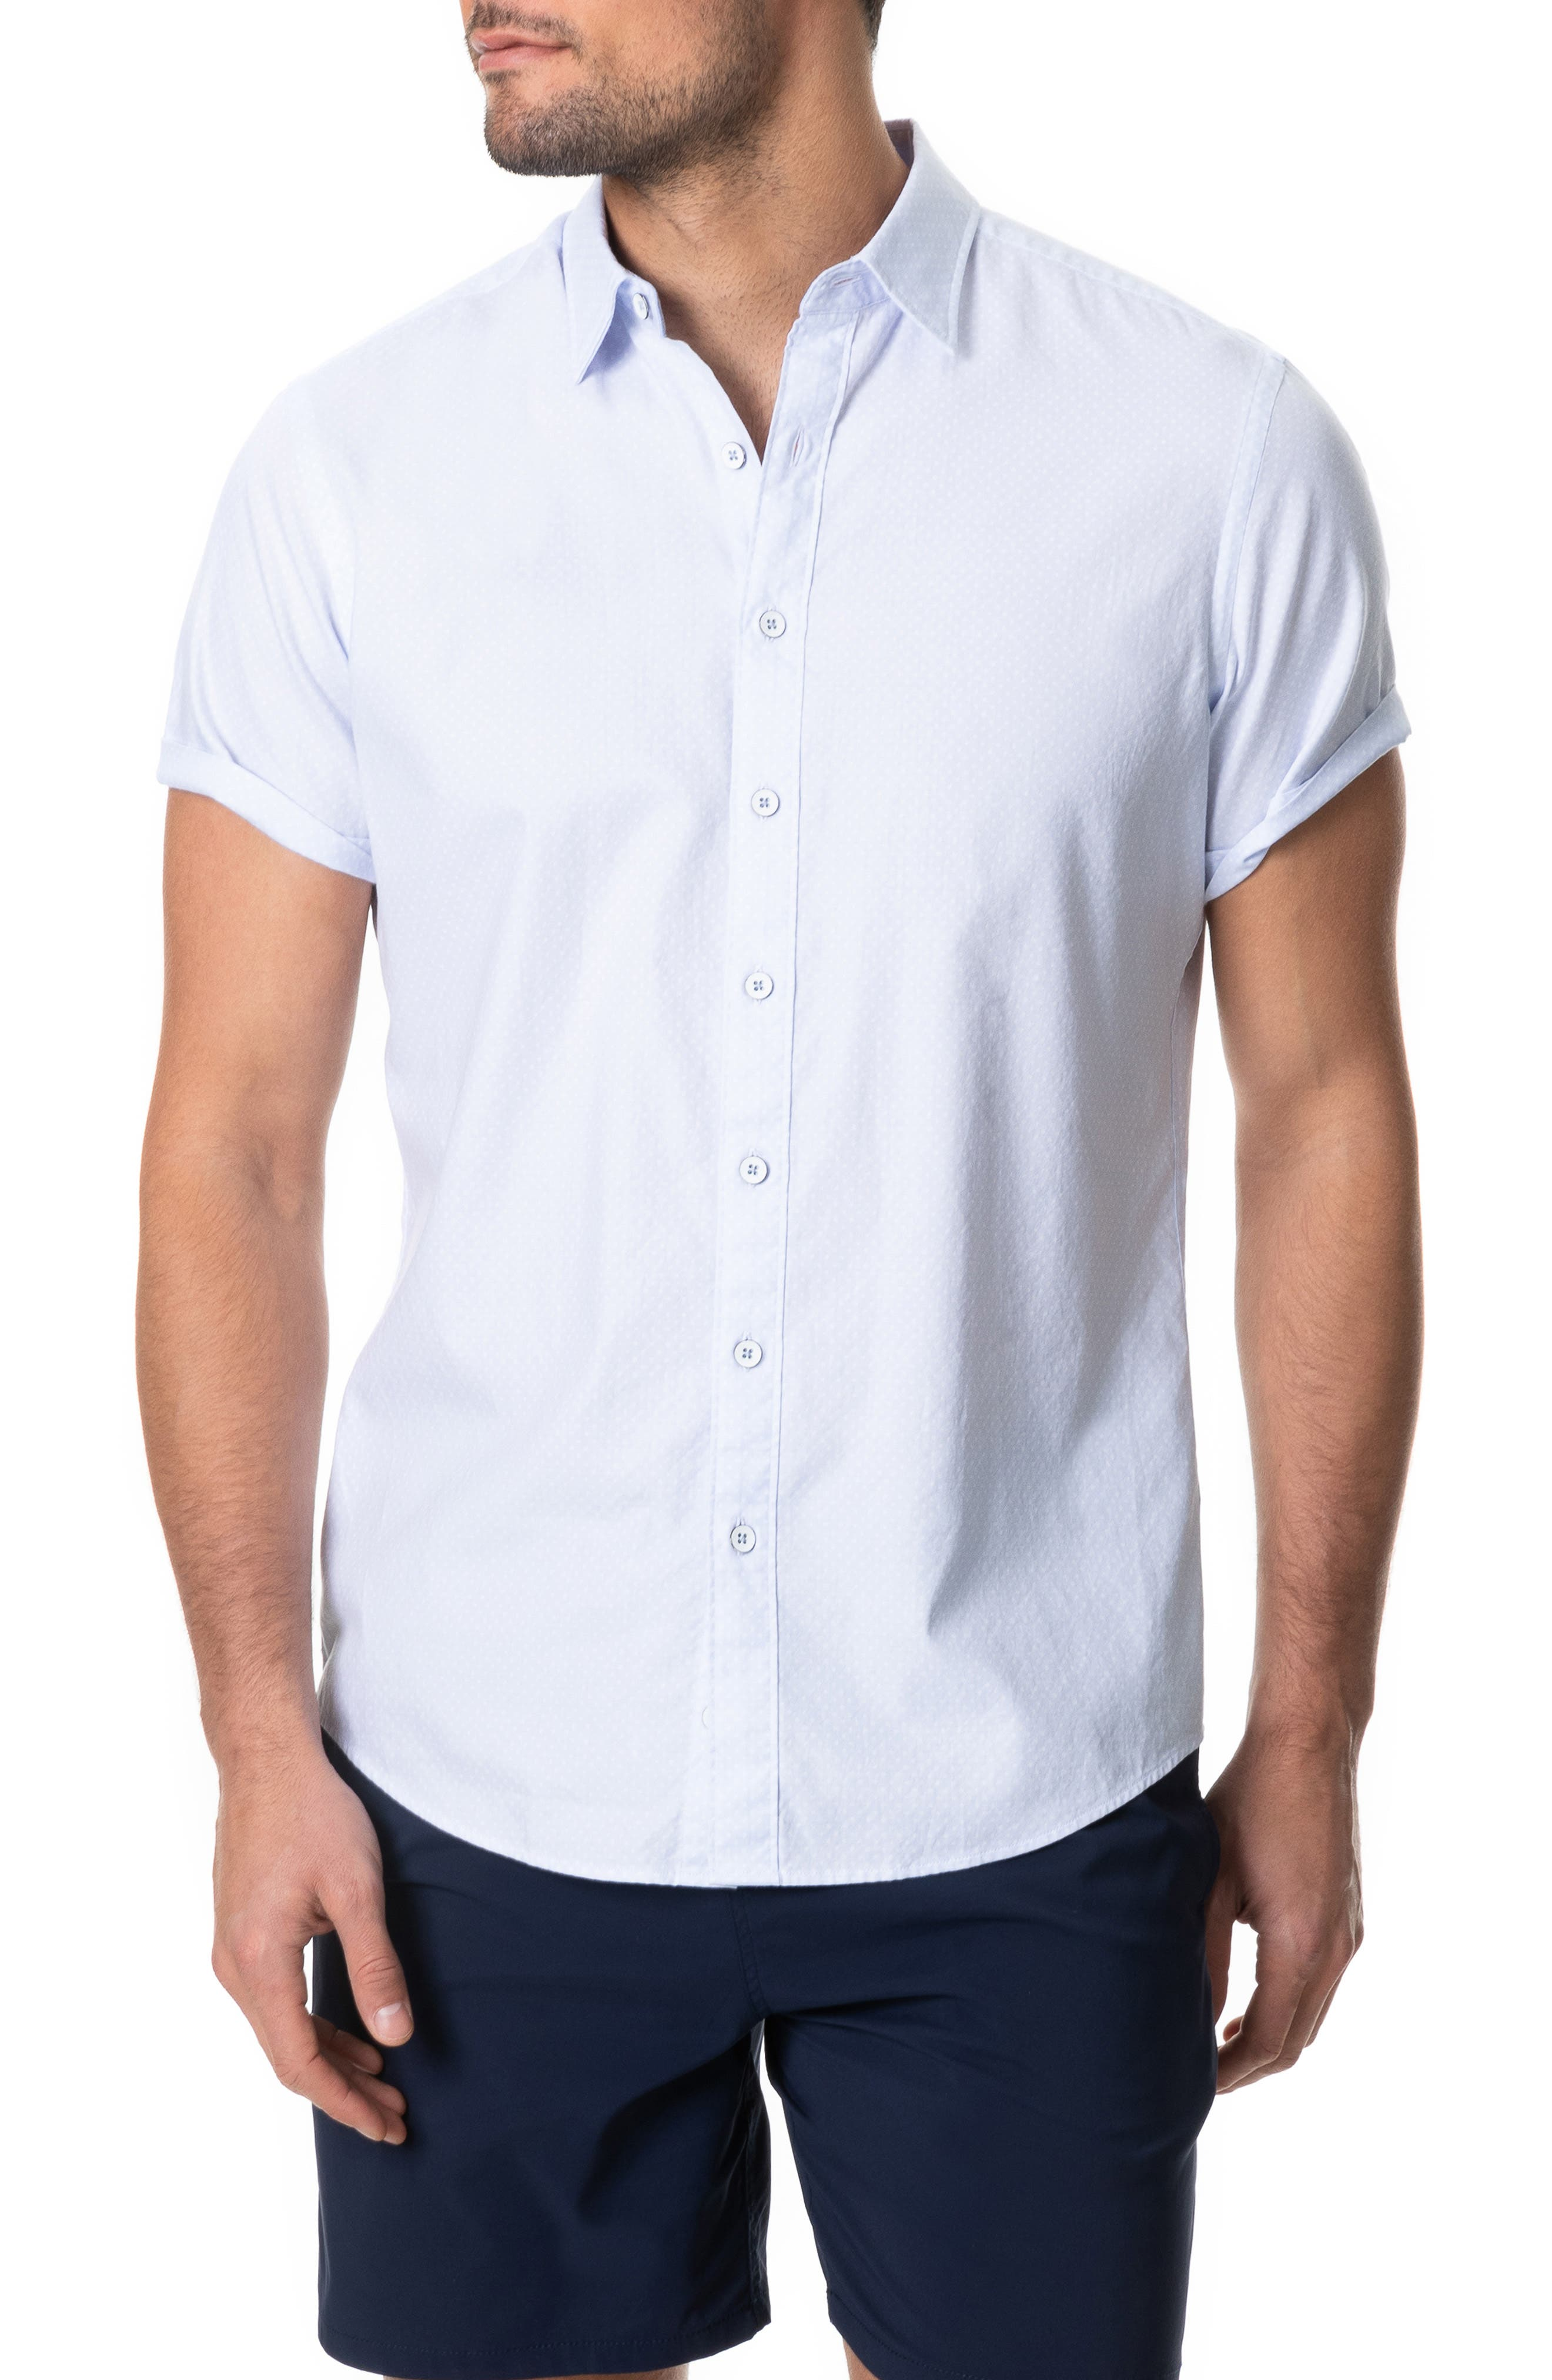 RODD AND GUNN Hurford Regular Fit Dot Short Sleeve Button-Up Shirt at Nordstrom Rack